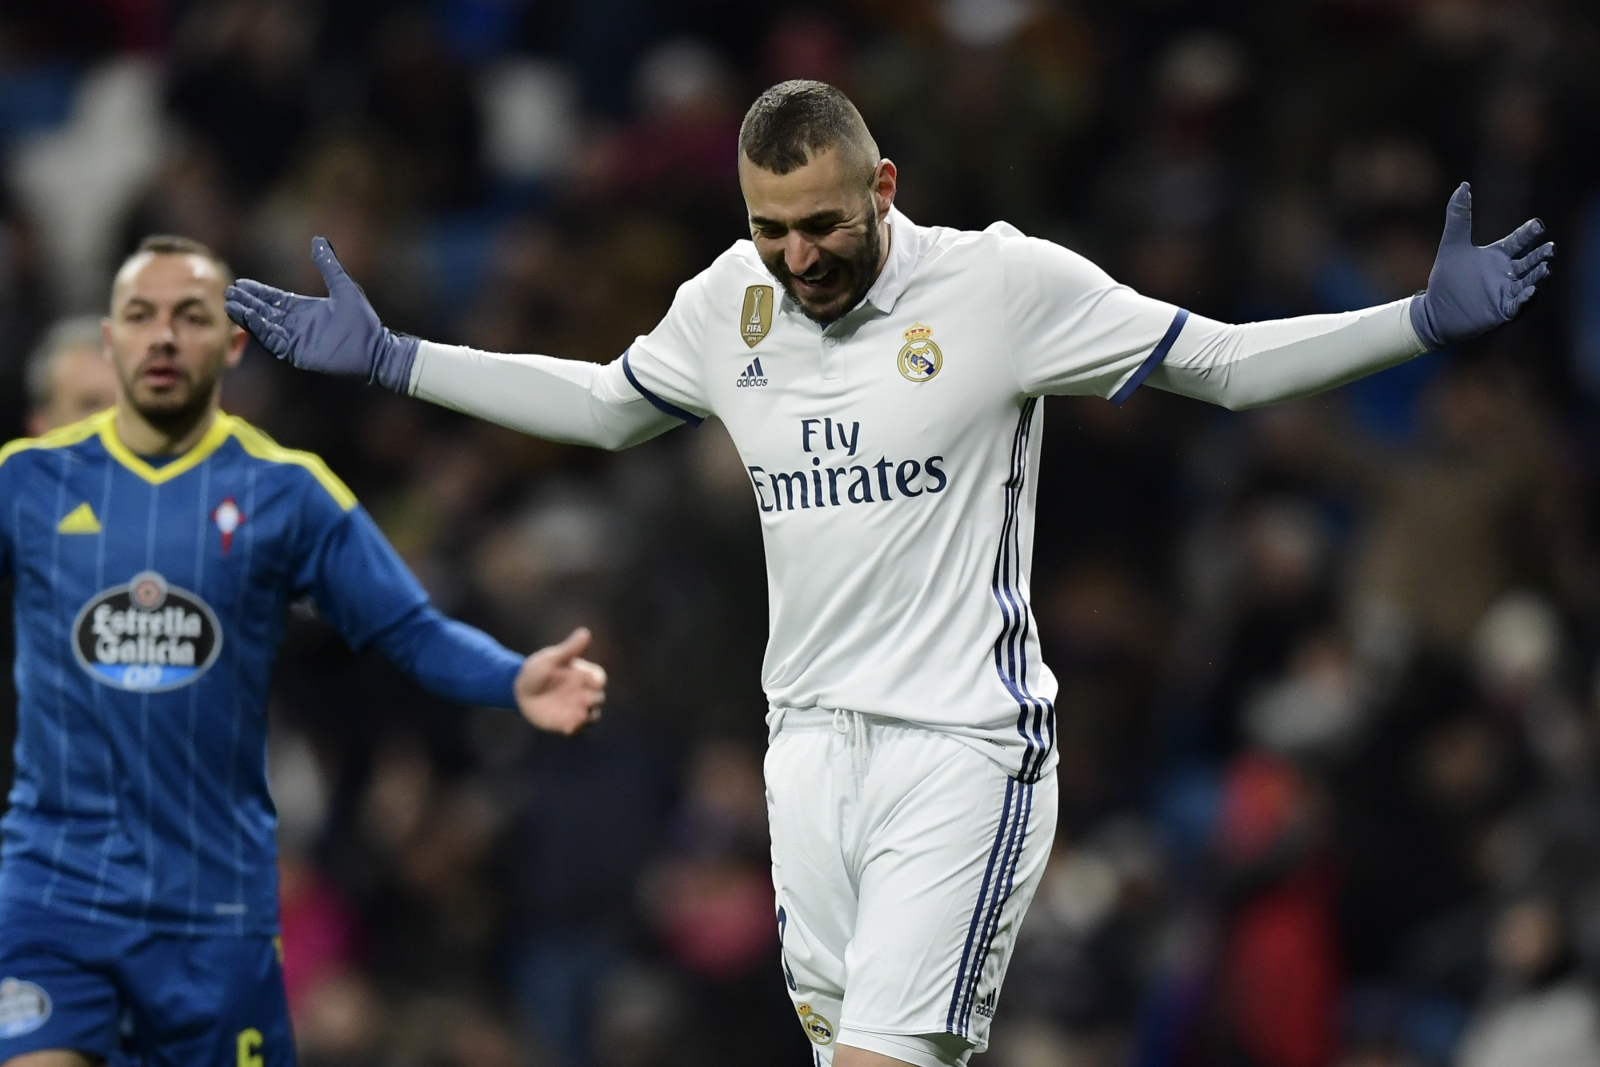 dani carvajal with Isco Karim Benzema Three More Real Madrid Players Be Offered New Deals Before New Season 1625581 on PSG Star Neymar Gets Ch ions League Tattoos as well Danicarvajal92 as well 3658 Postal Real Madrid Carvajal 2014 15 likewise Football further Football.